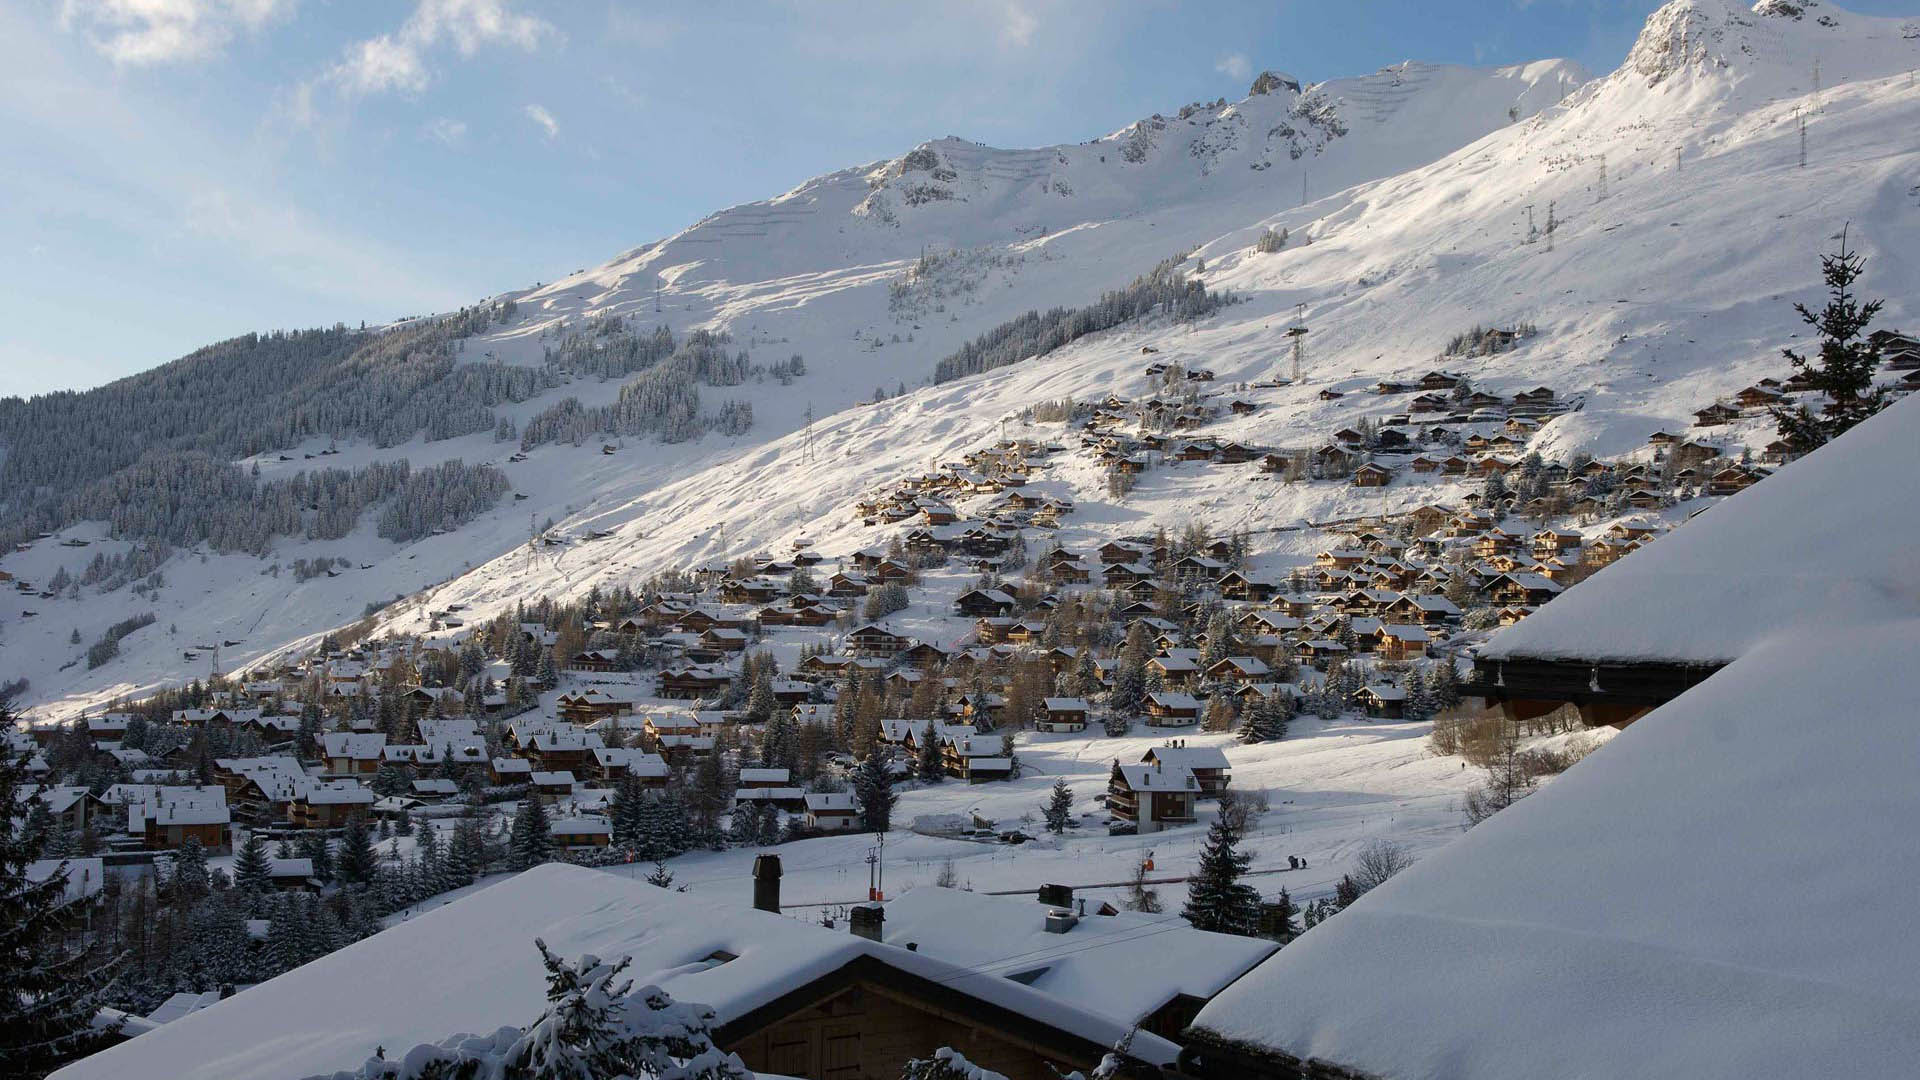 Snow covered Chalets in Verbier, Switzerland